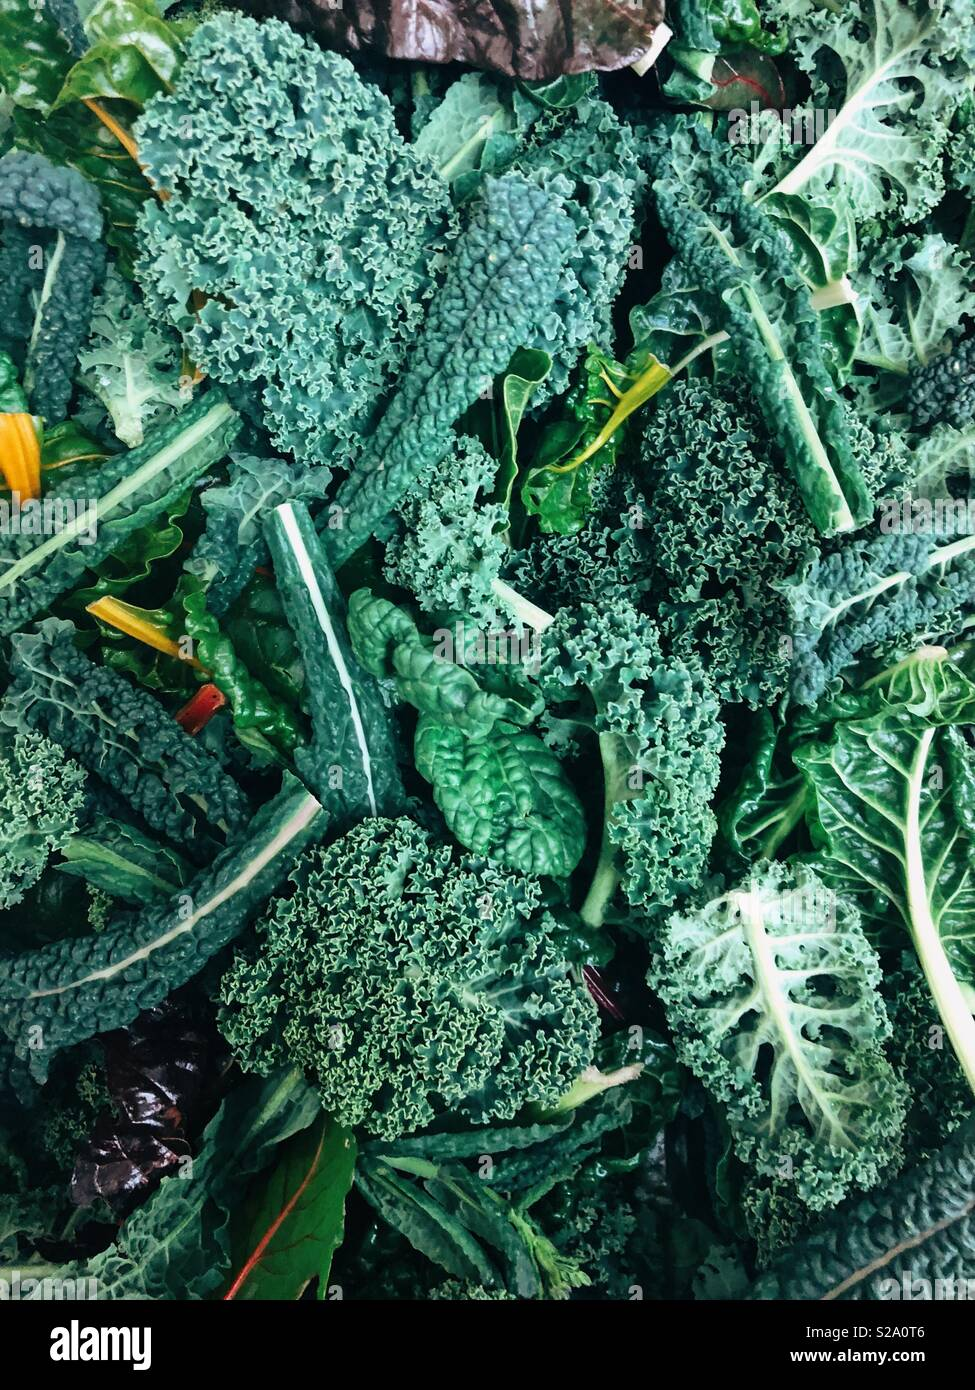 Mixed kale and silver beet - Stock Image